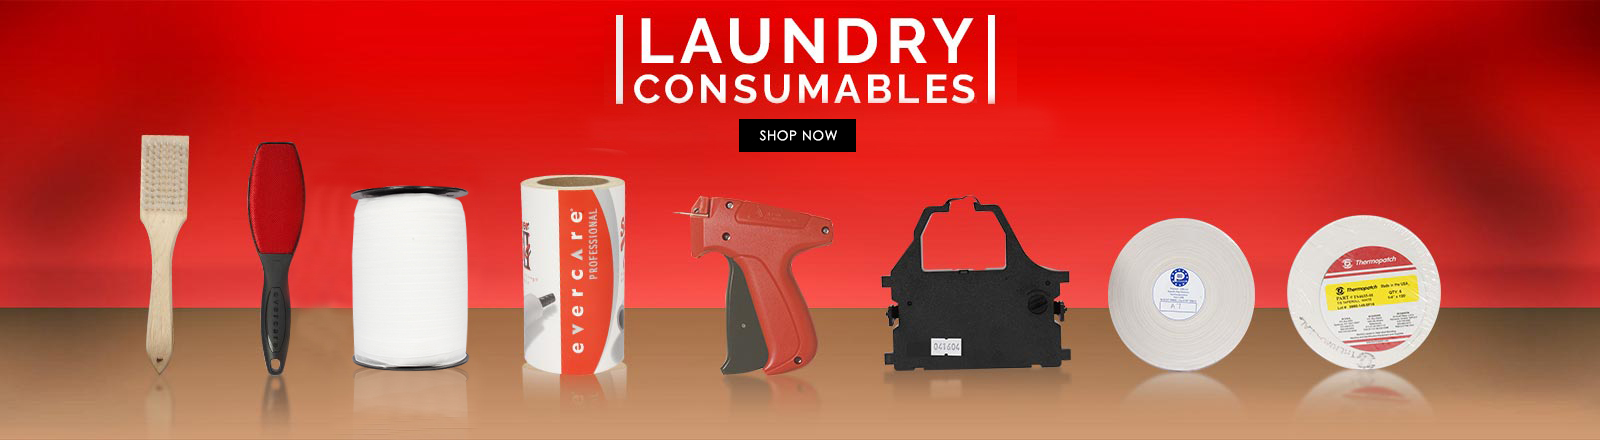 LeProtek-Laundry-Consumables